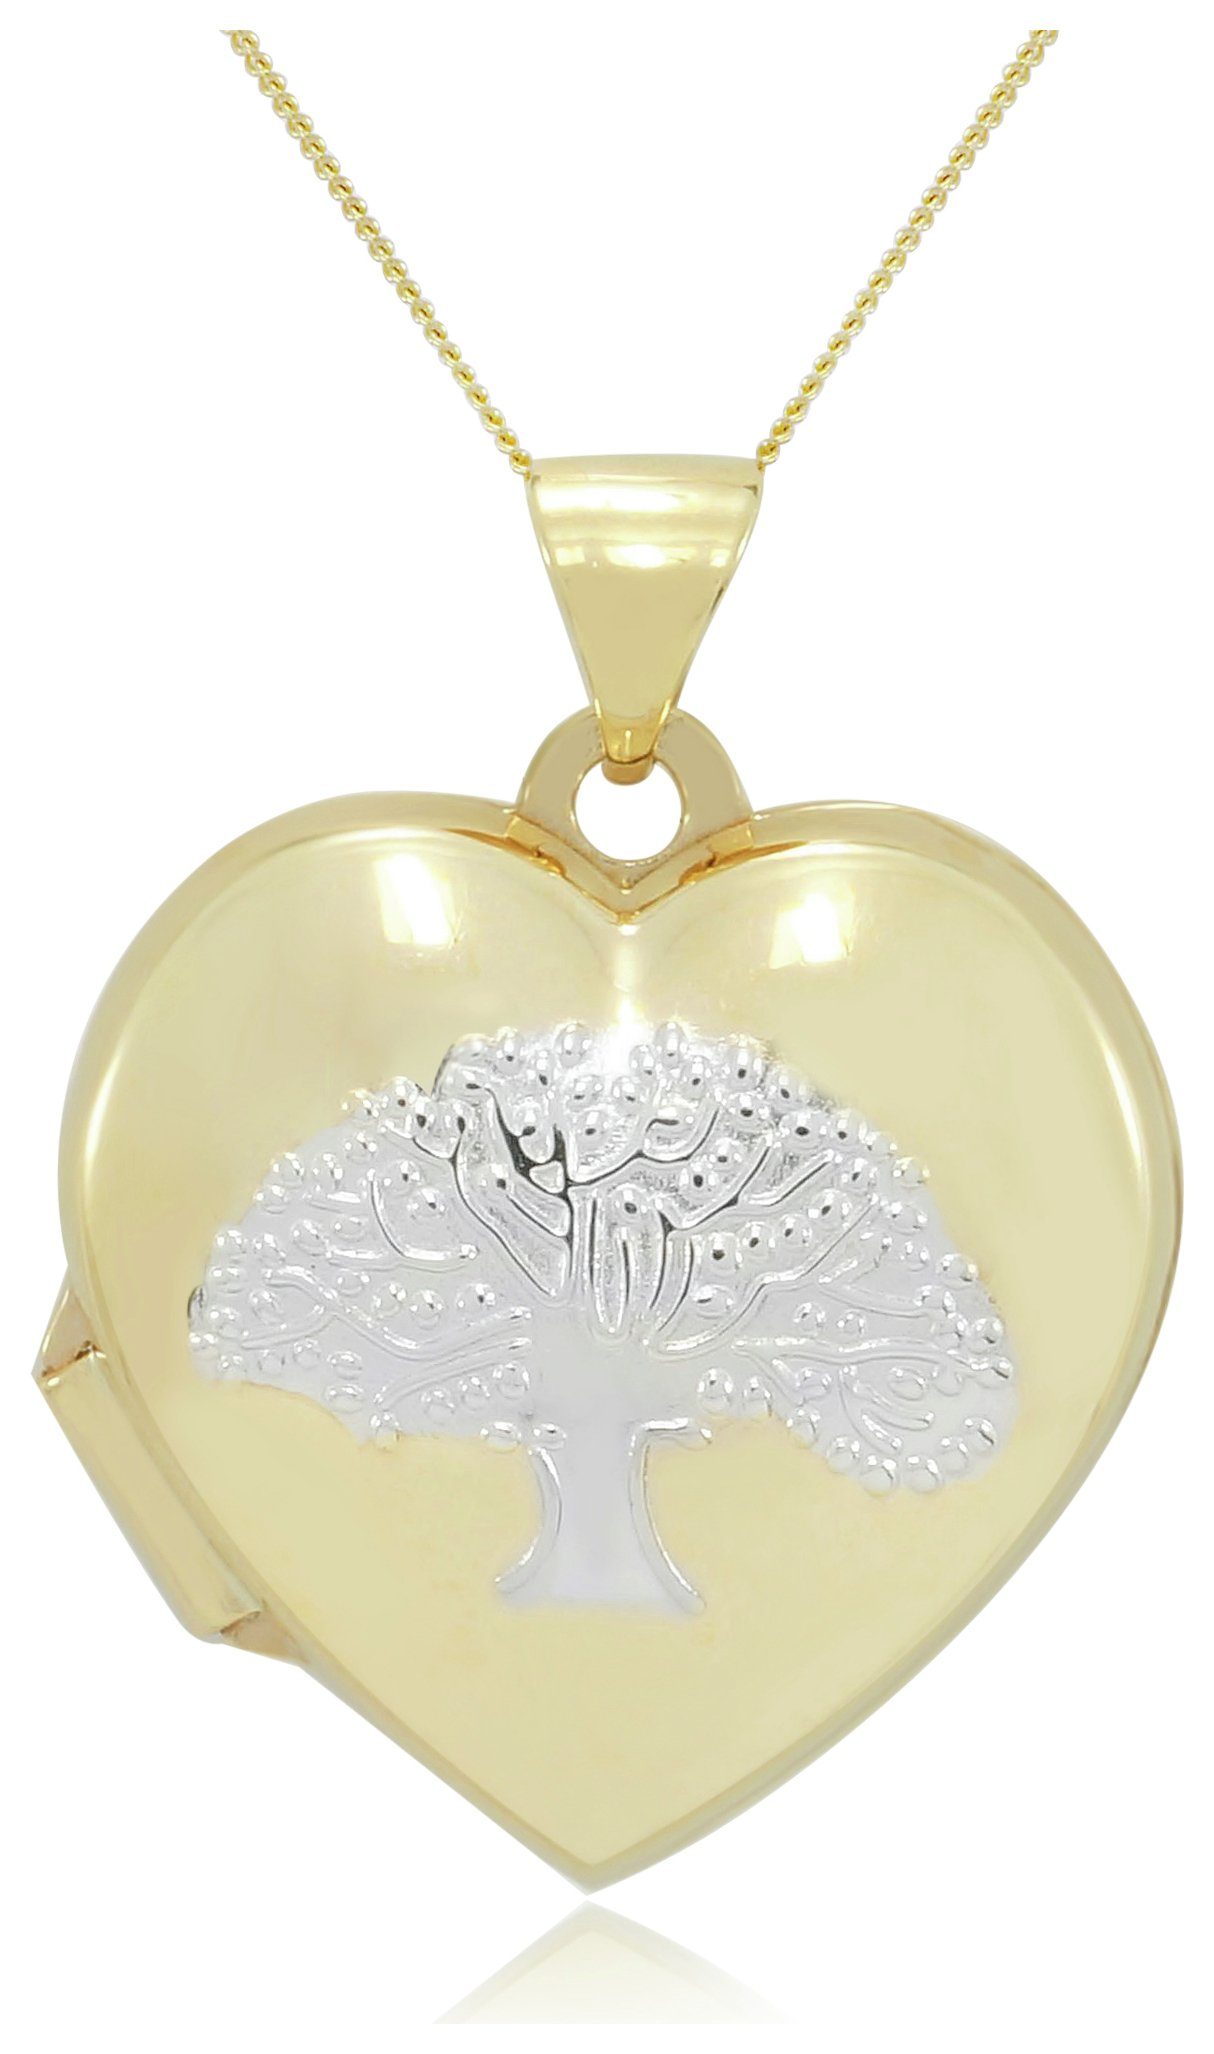 Image of 9 Carat - Two Toned Family Tree Locket.